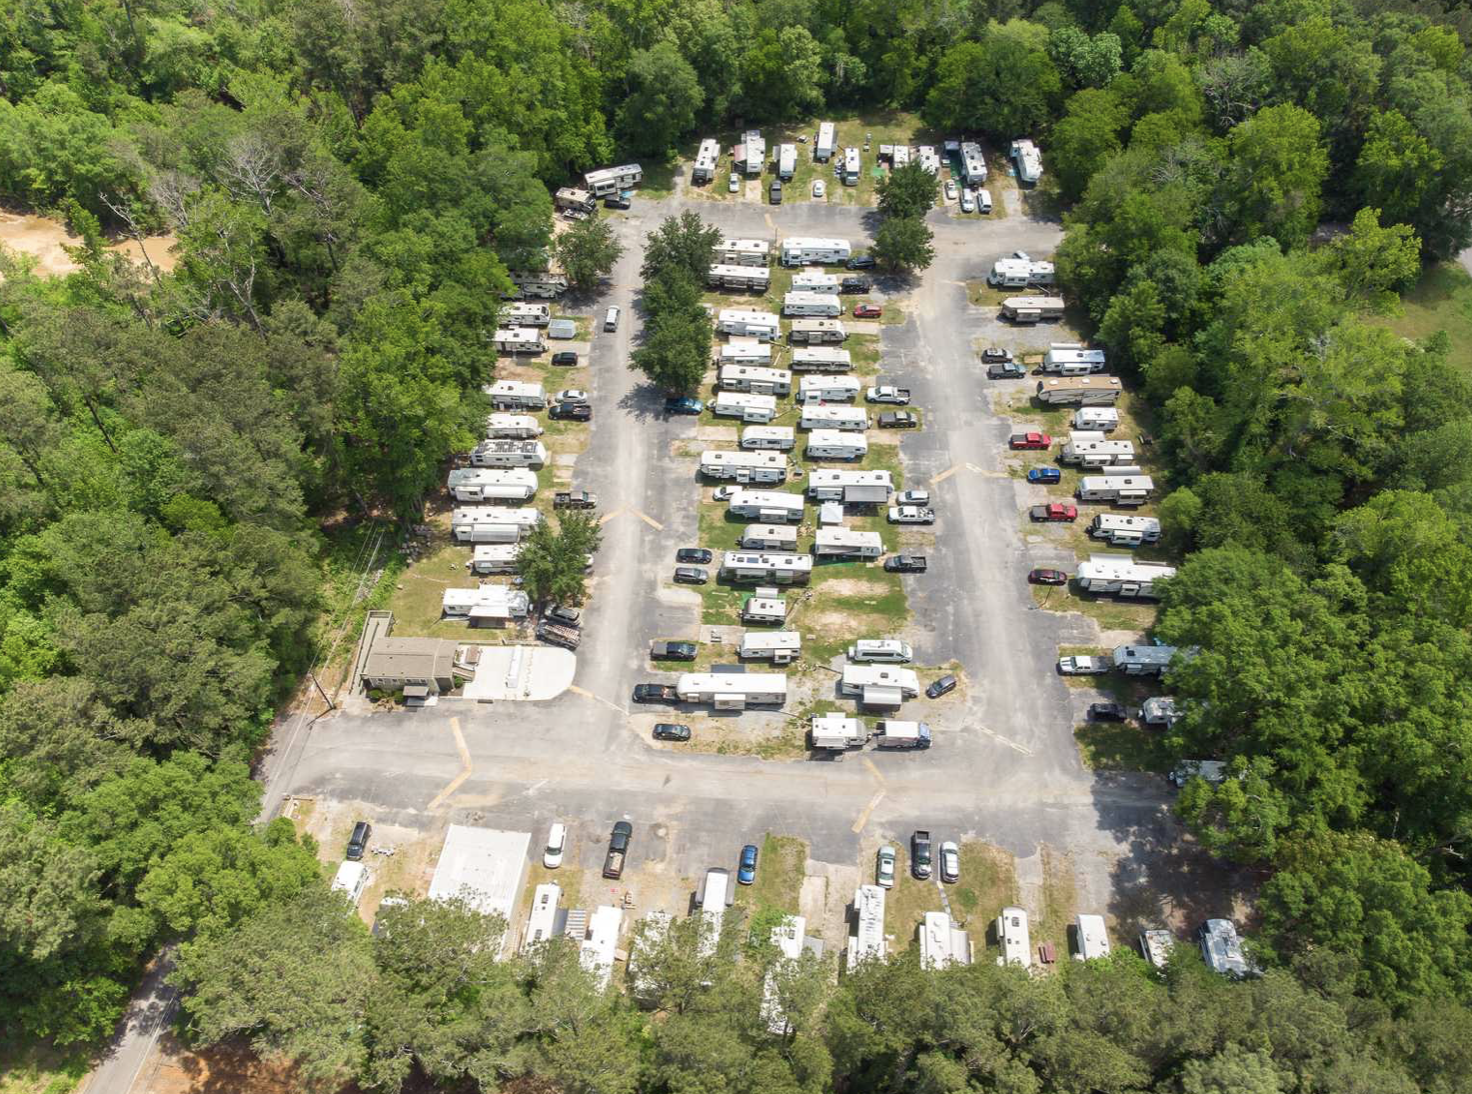 Ariel view of RV Park in the woods